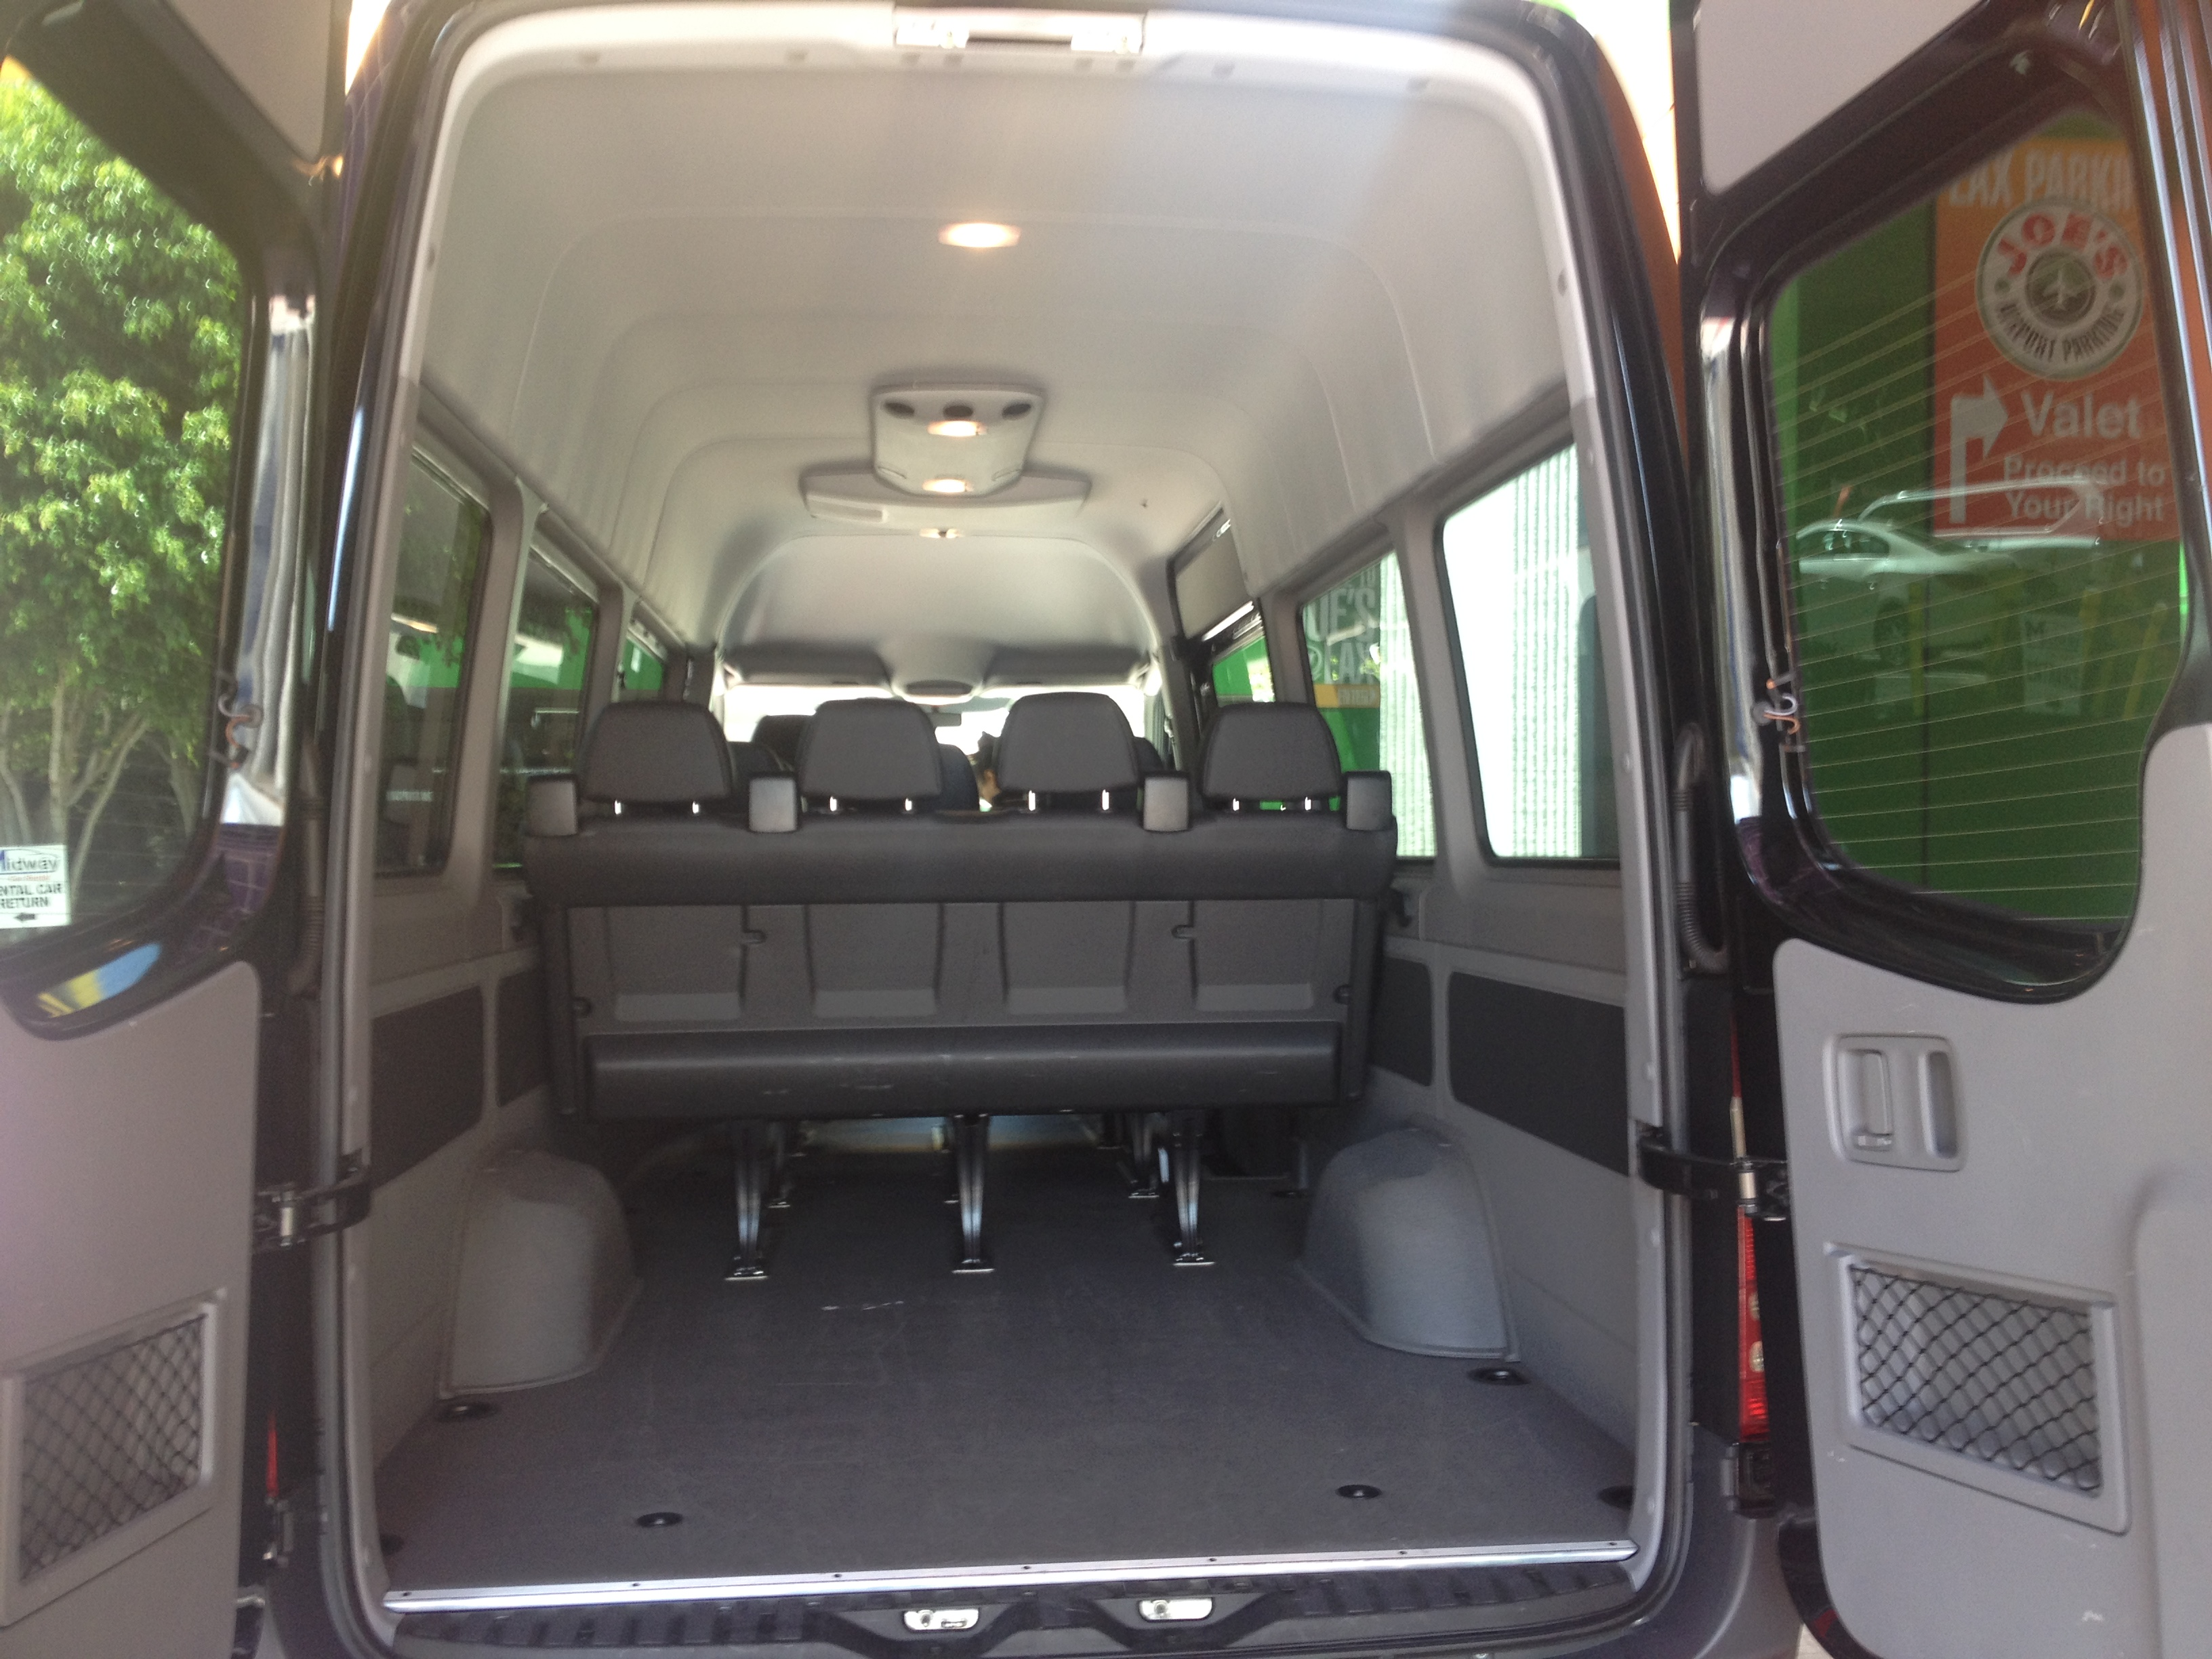 Van captain chair - The Luxury Sprinter Van With Up To 12 Captain Chairs Also Features Loads Of Hightech Safety Gear Including Crosswind